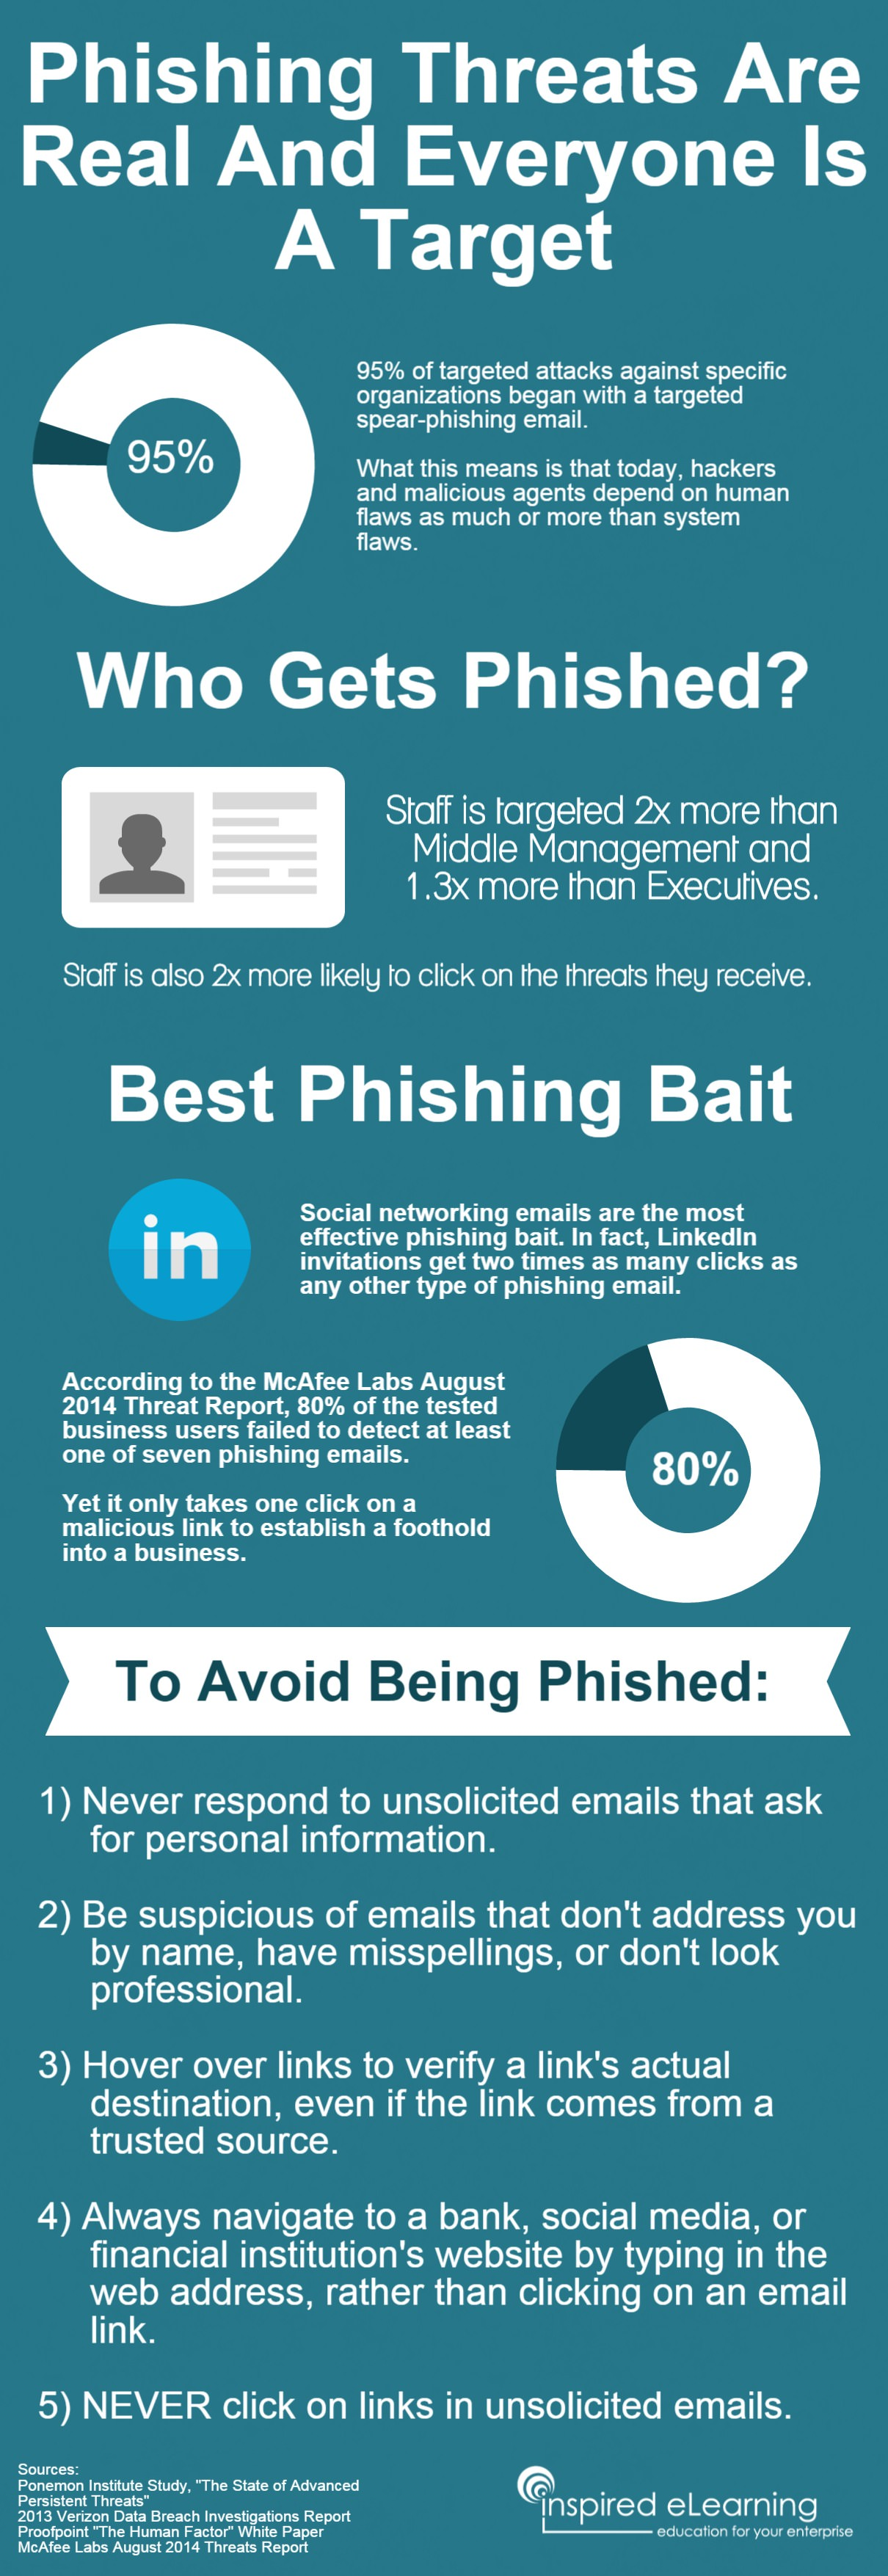 how to make a phishing site 2017